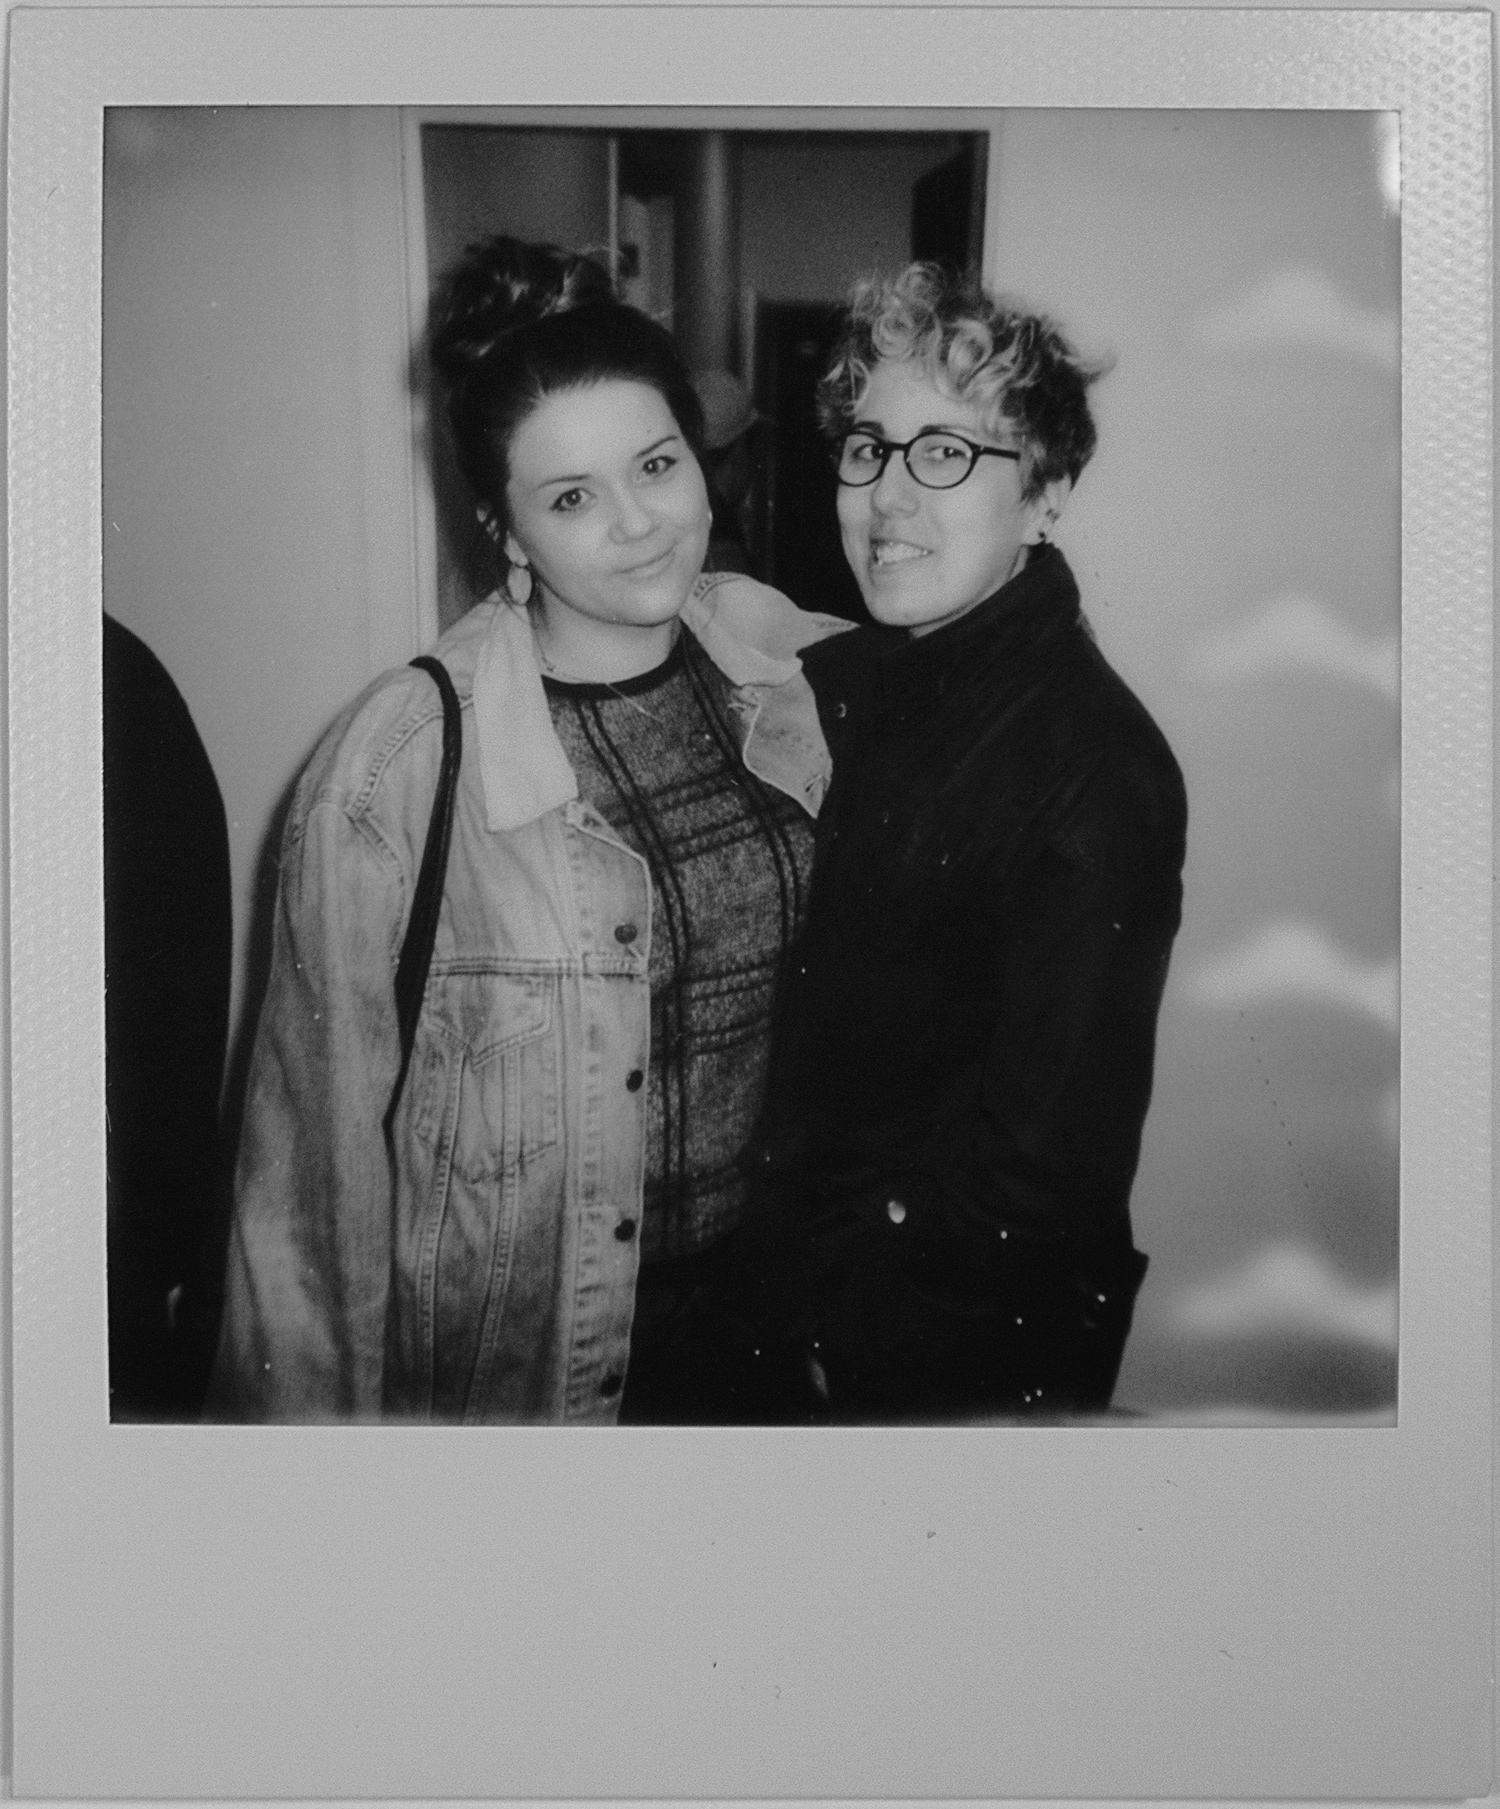 PYLOT ISSUE 04 LAUNCH PARTY IMPOSSIBLE PROJECT 07